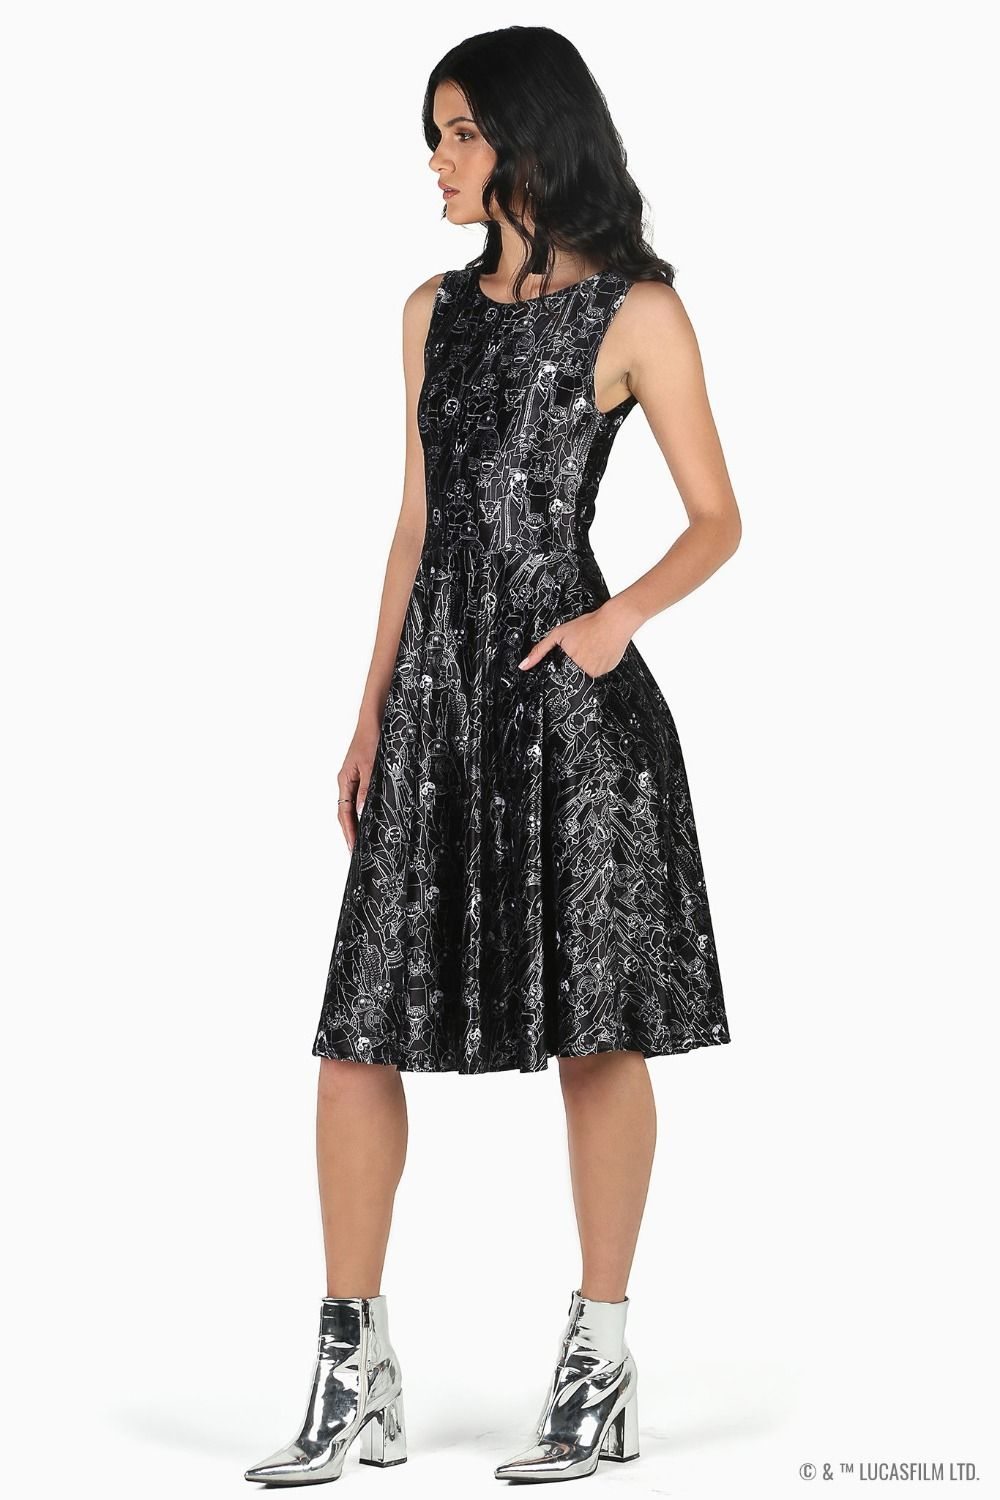 Black Milk Clothing x Star Wars Sentients Velvet Princess Midi Dress